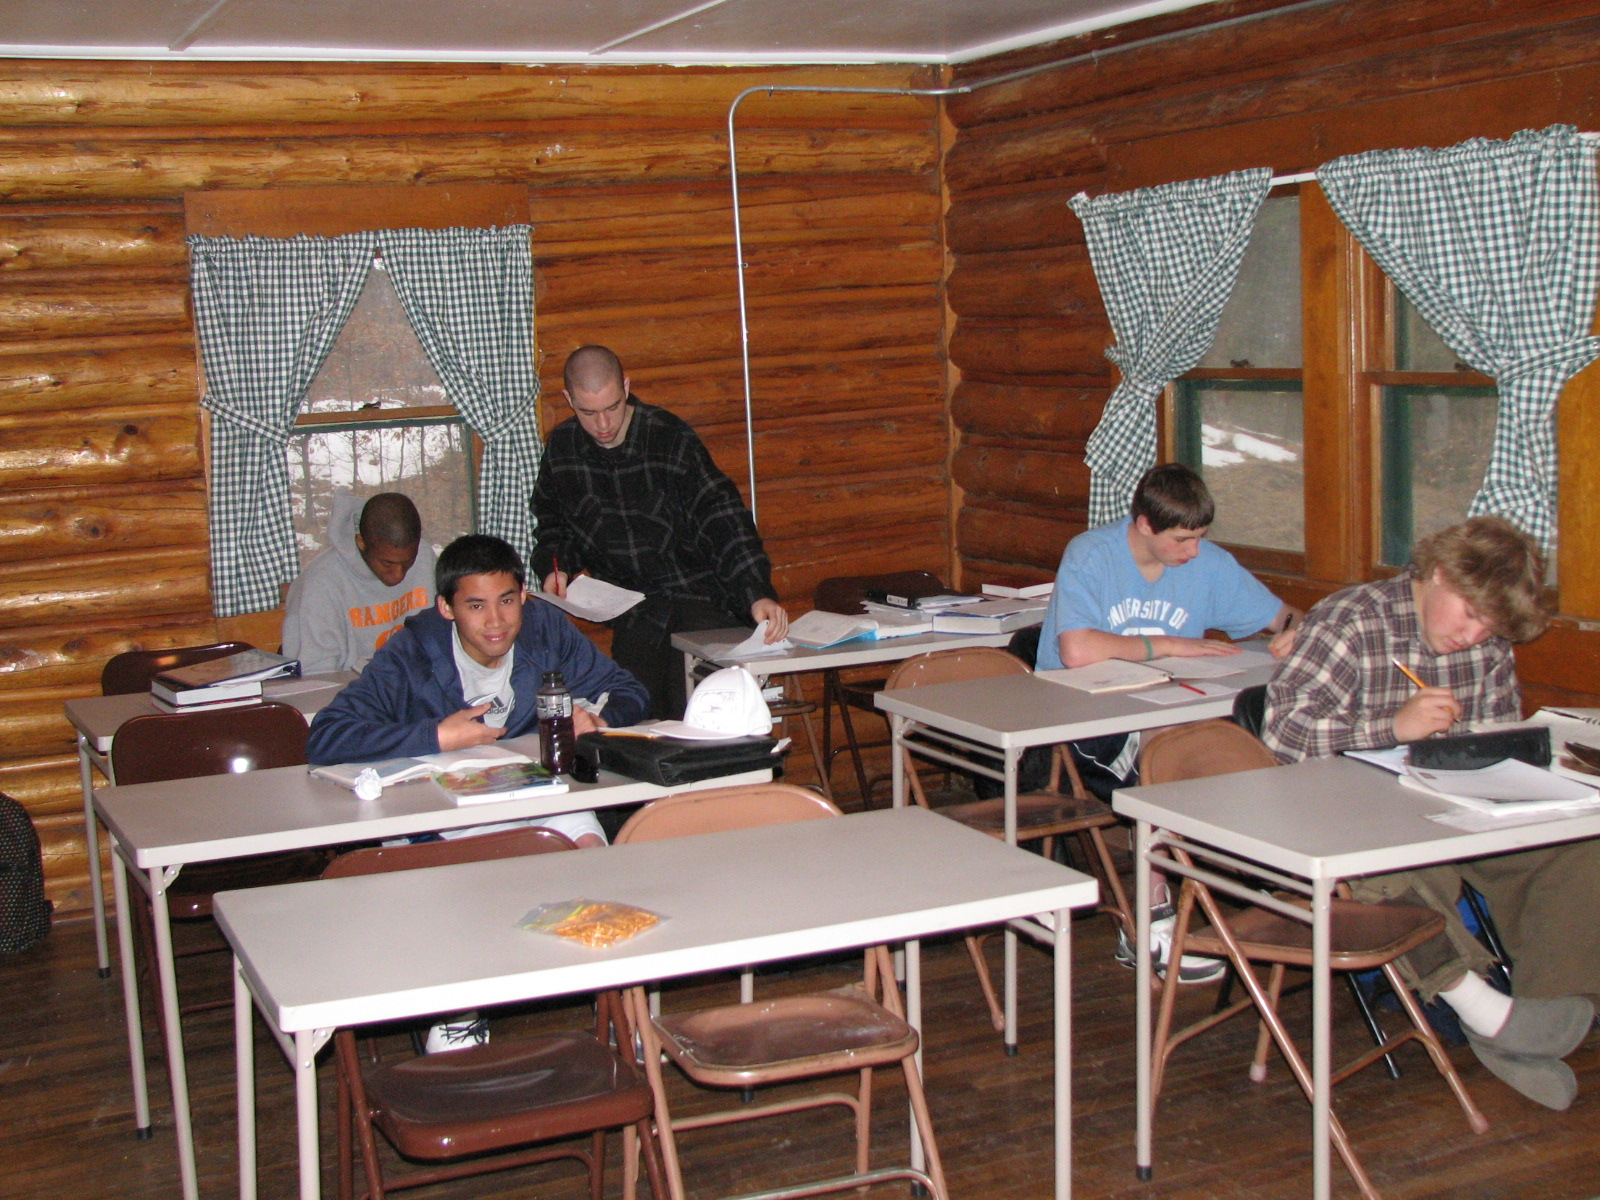 Students working in one area of the cabin